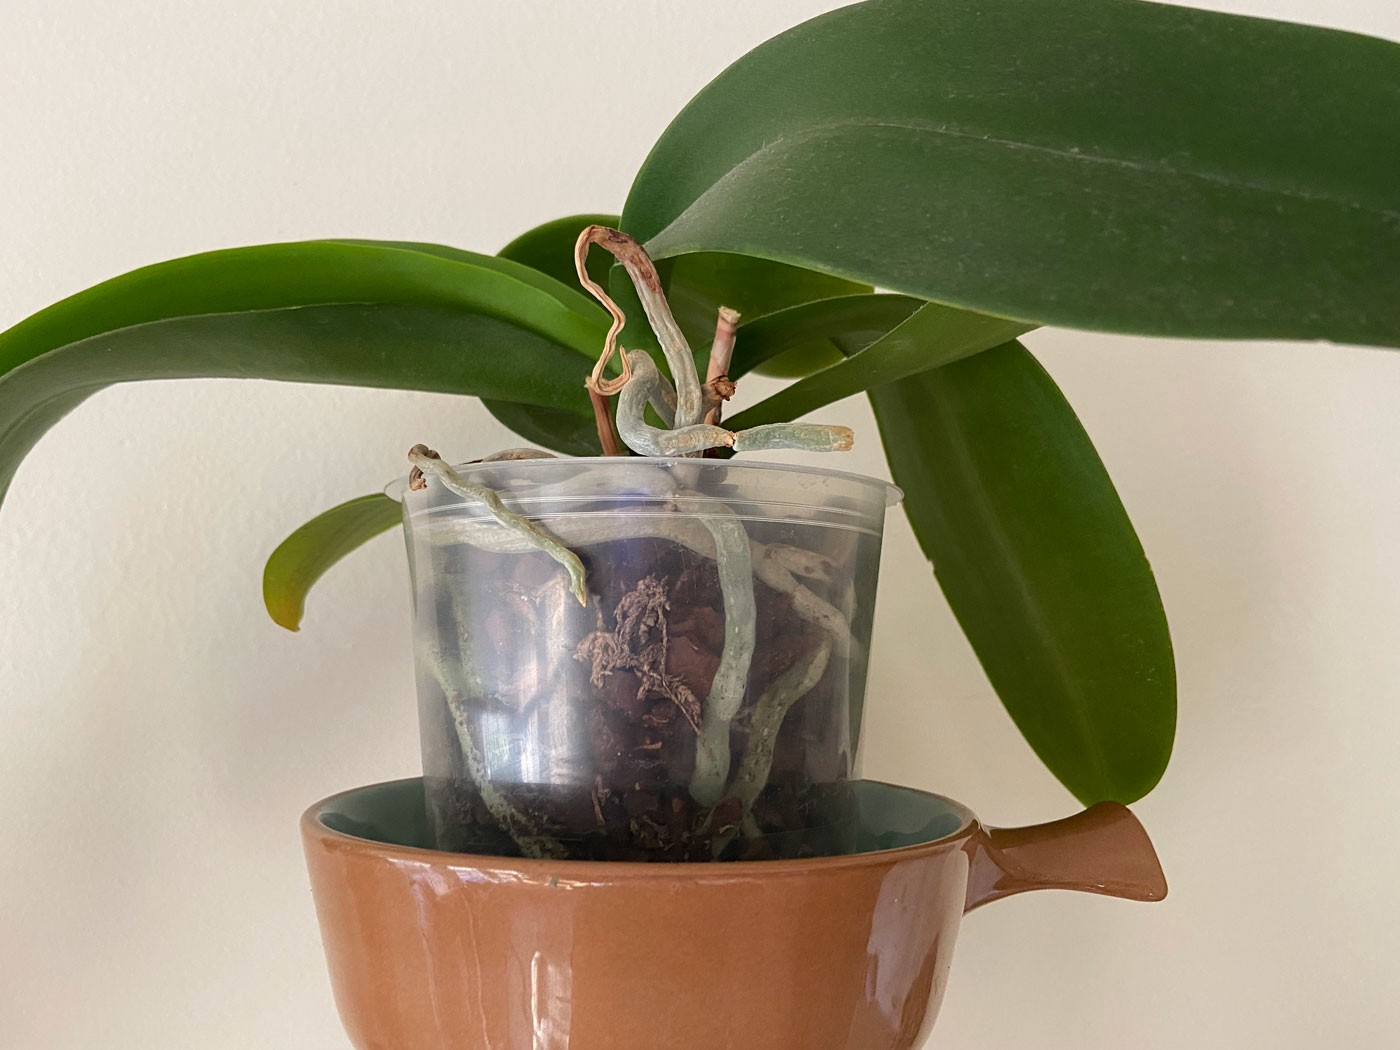 An orchid in a pot.